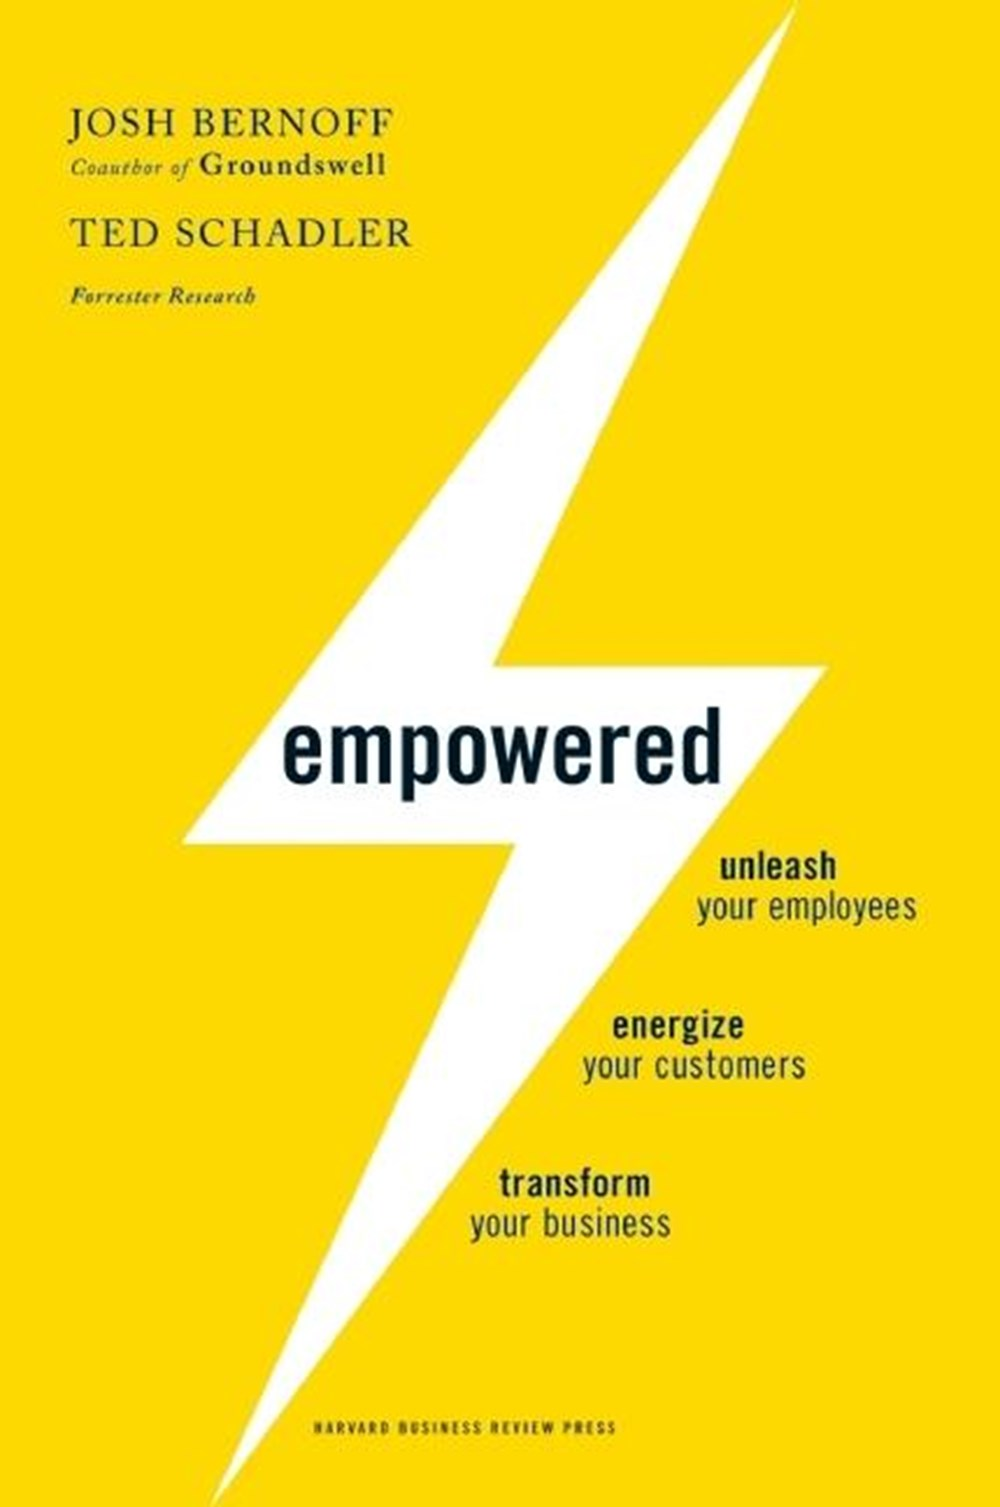 Empowered Unleash Your Employees, Energize Your Customers, and Transform Your Business